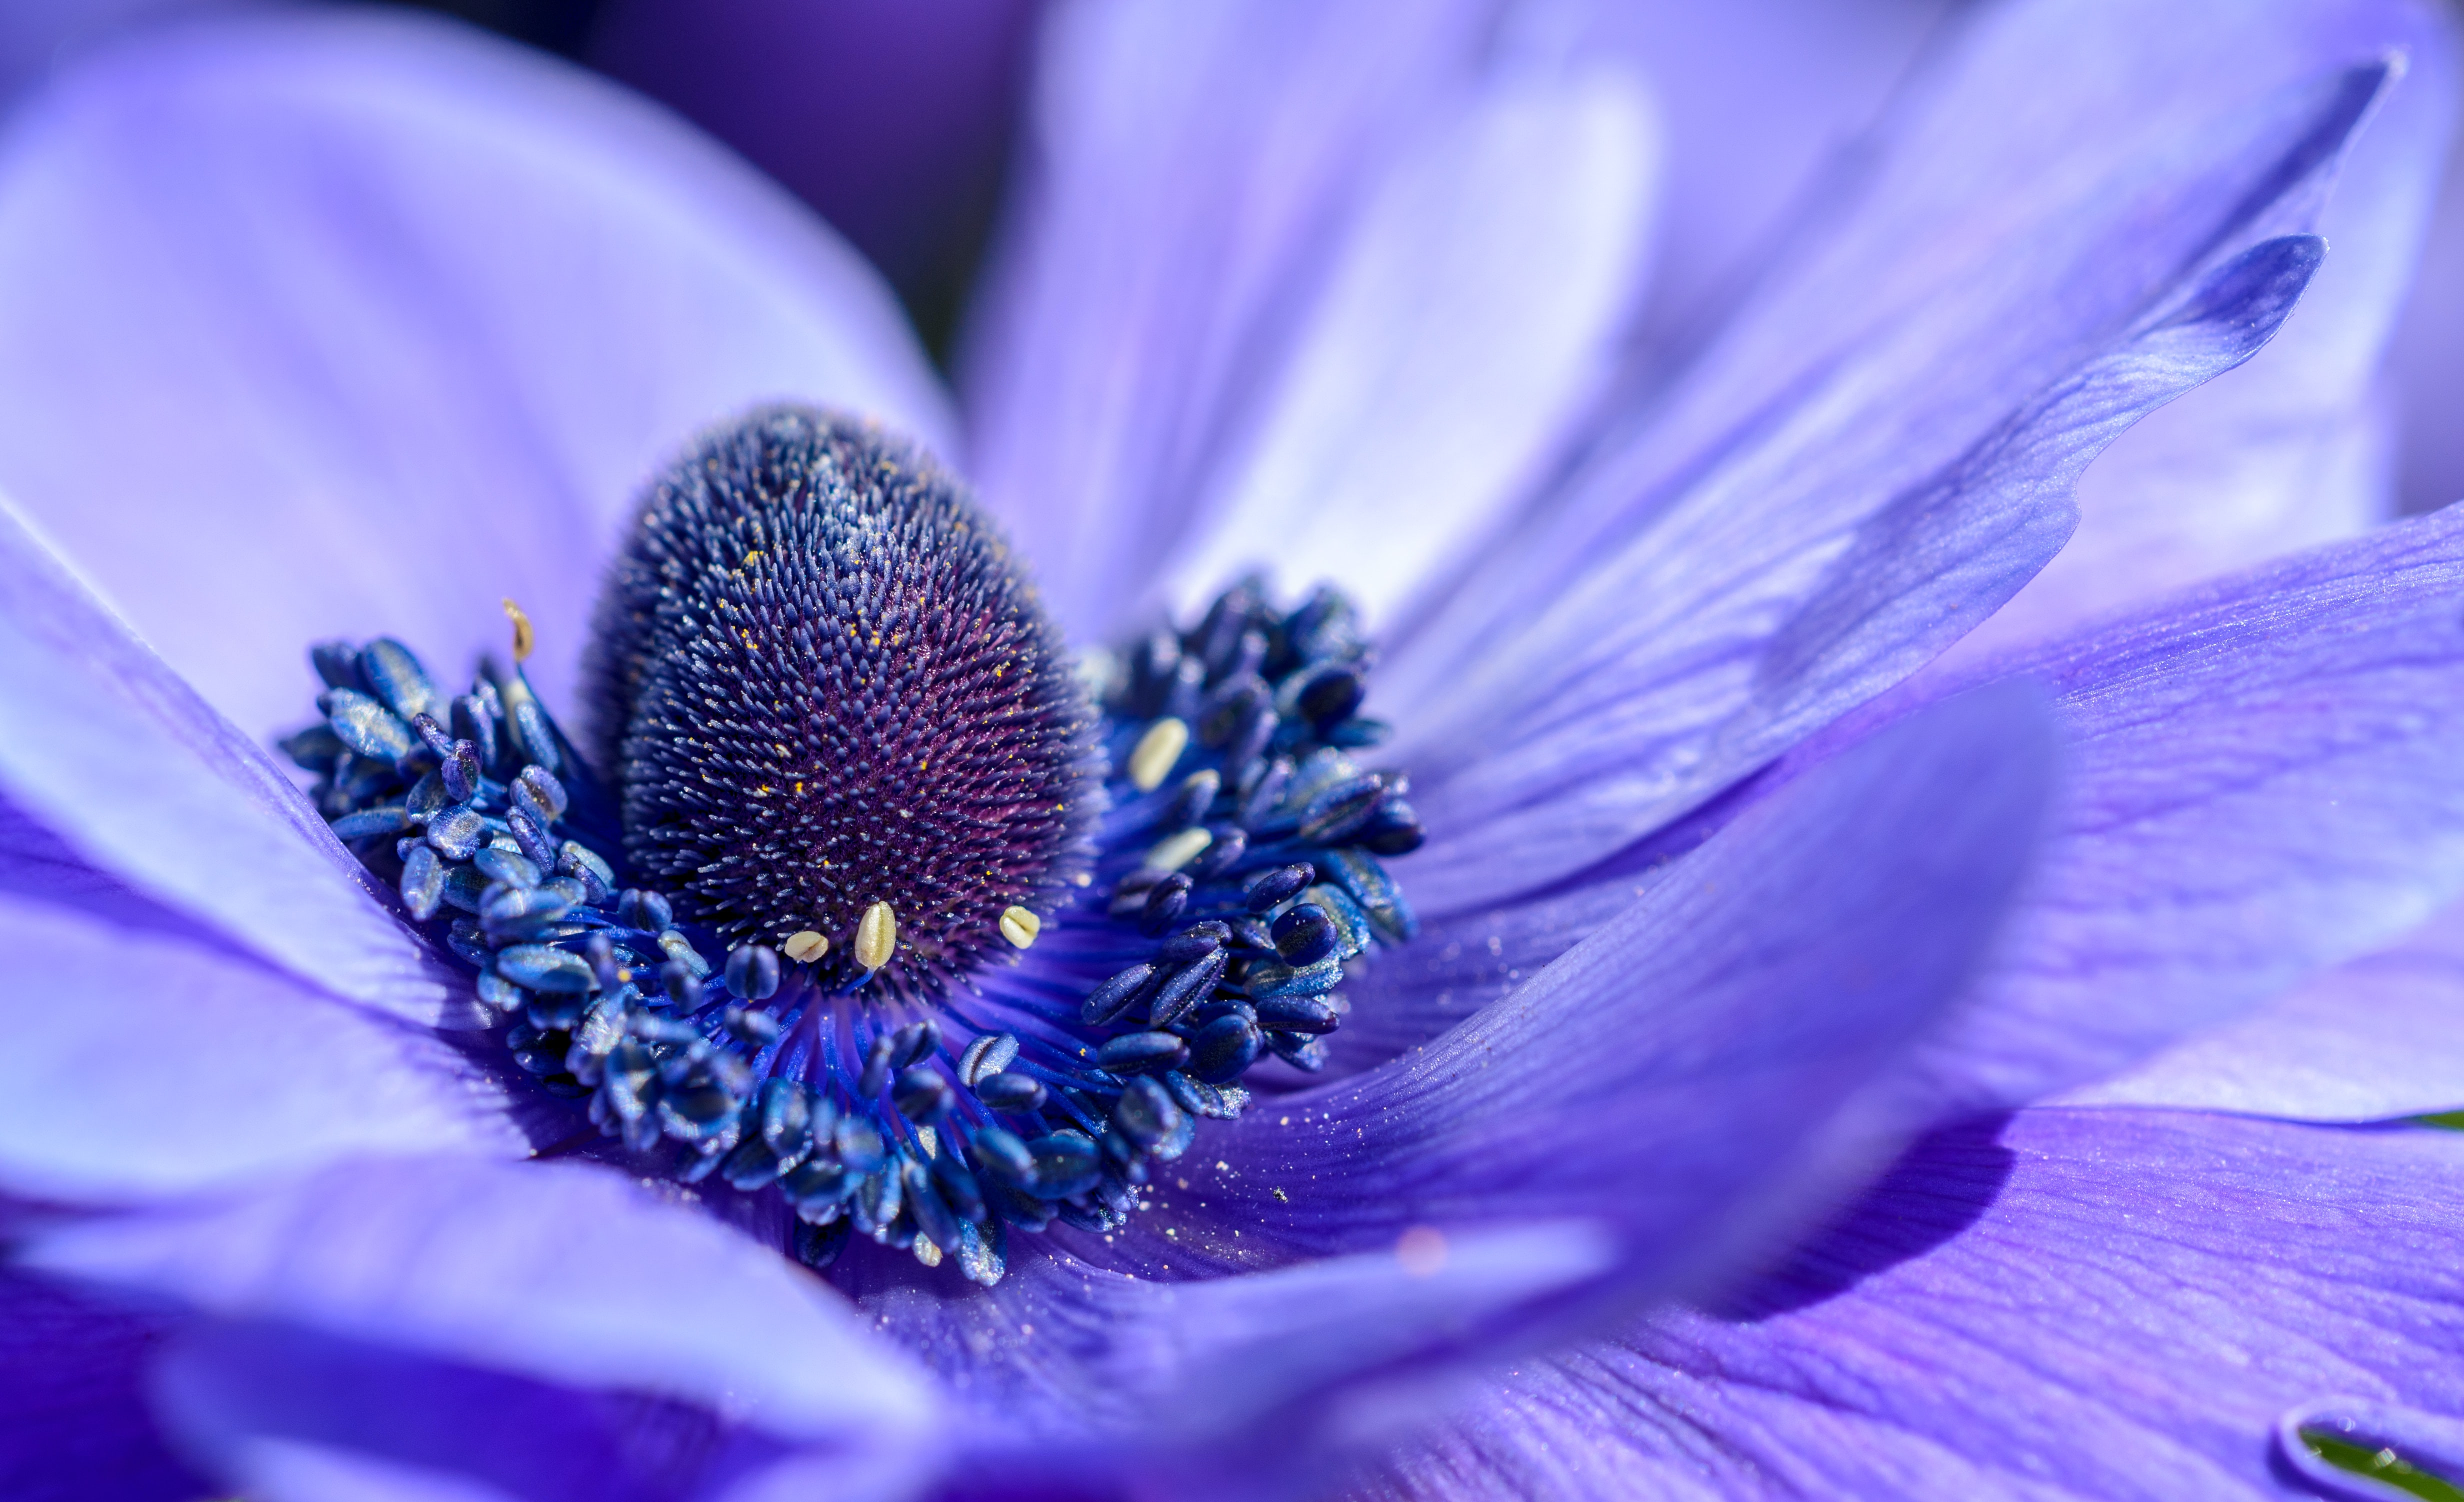 A macro shot of the center of a deep violet flower